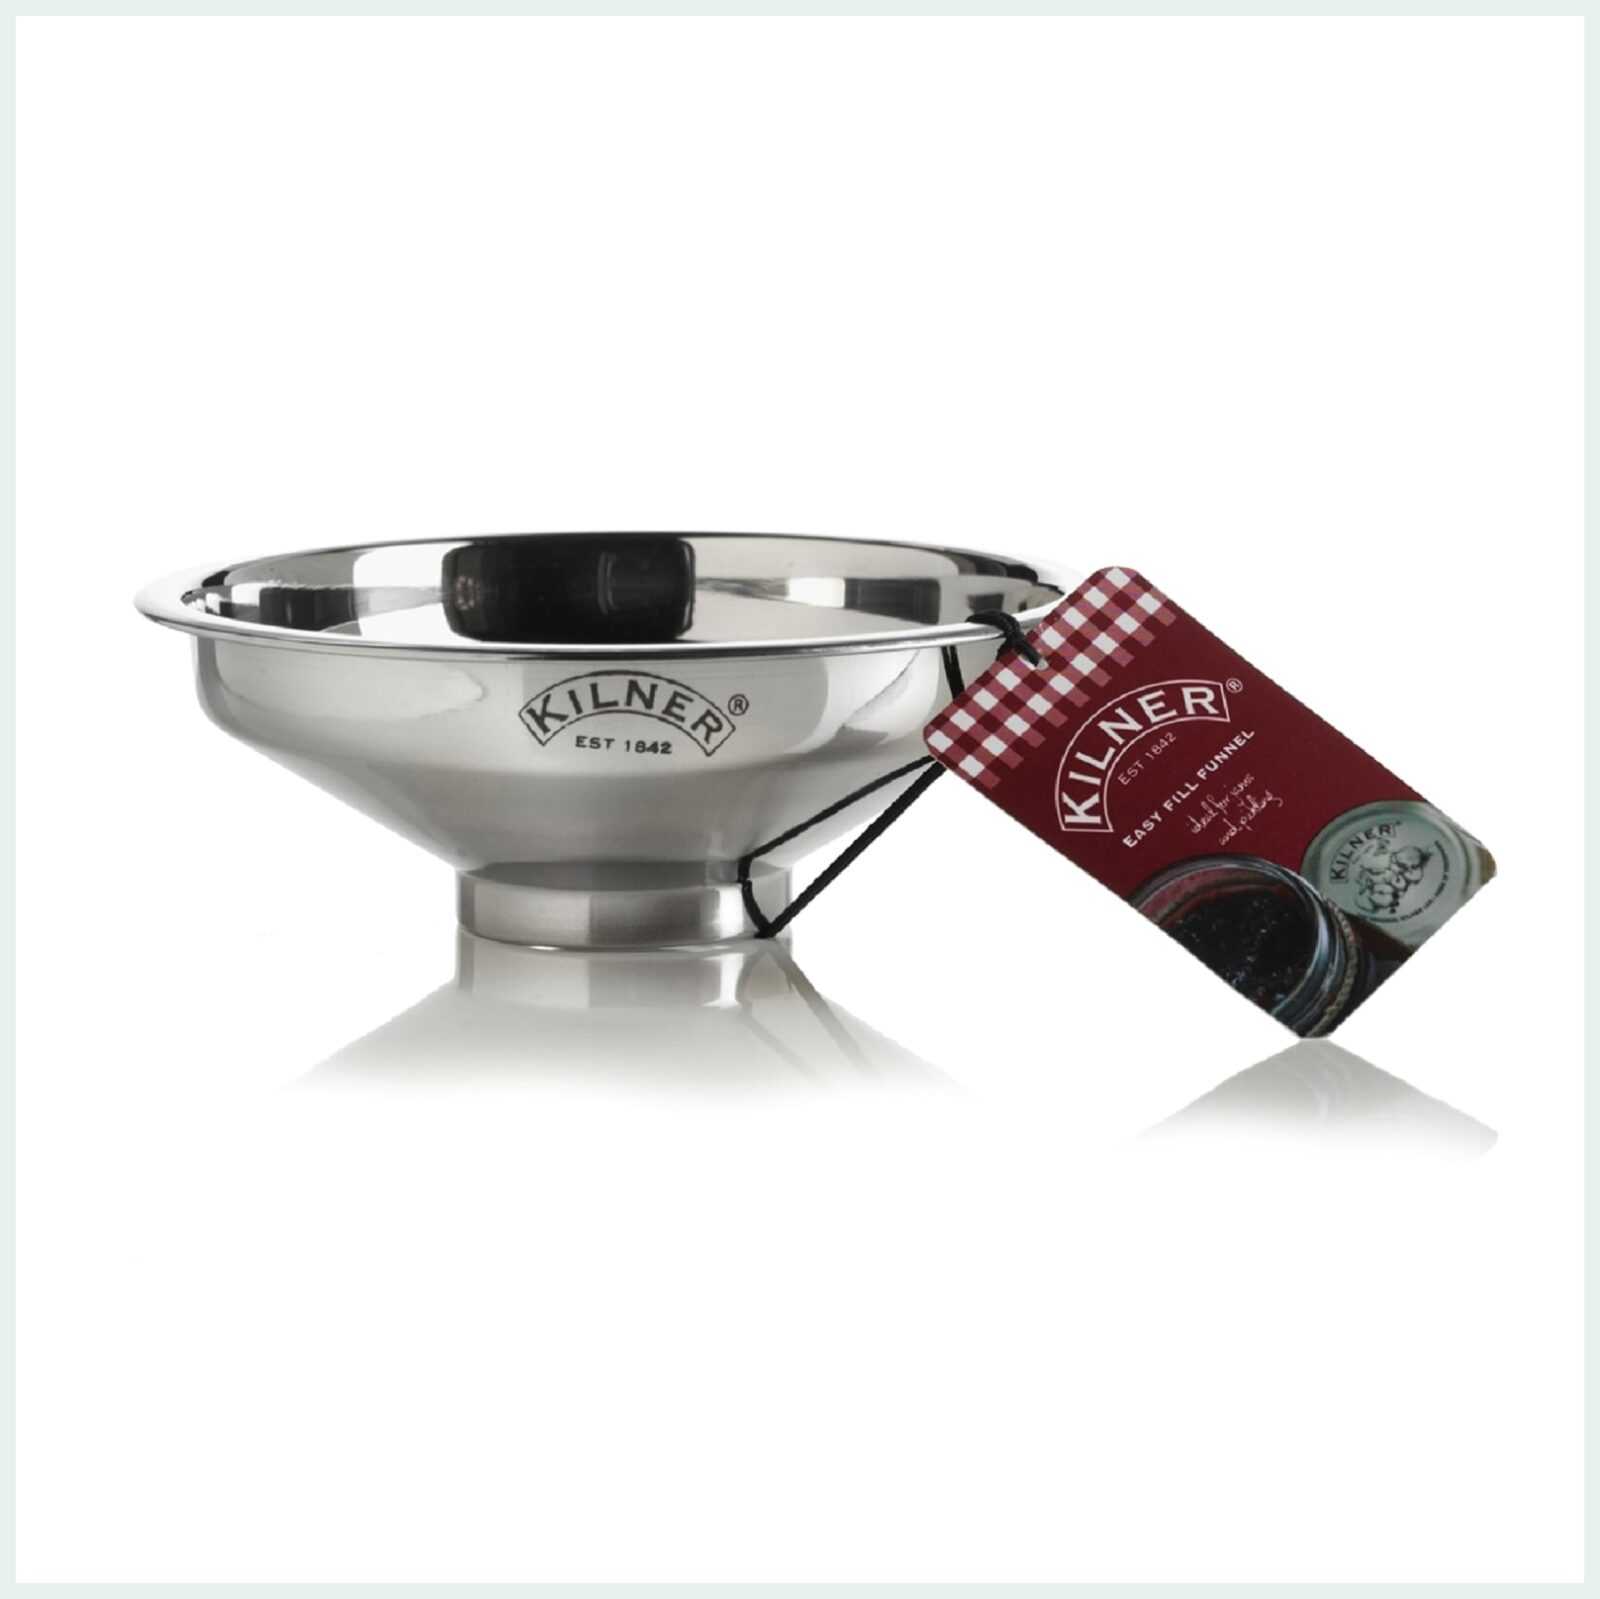 Kilner Stainless Steel Canning Jar Funnel for Jam Making and Canning